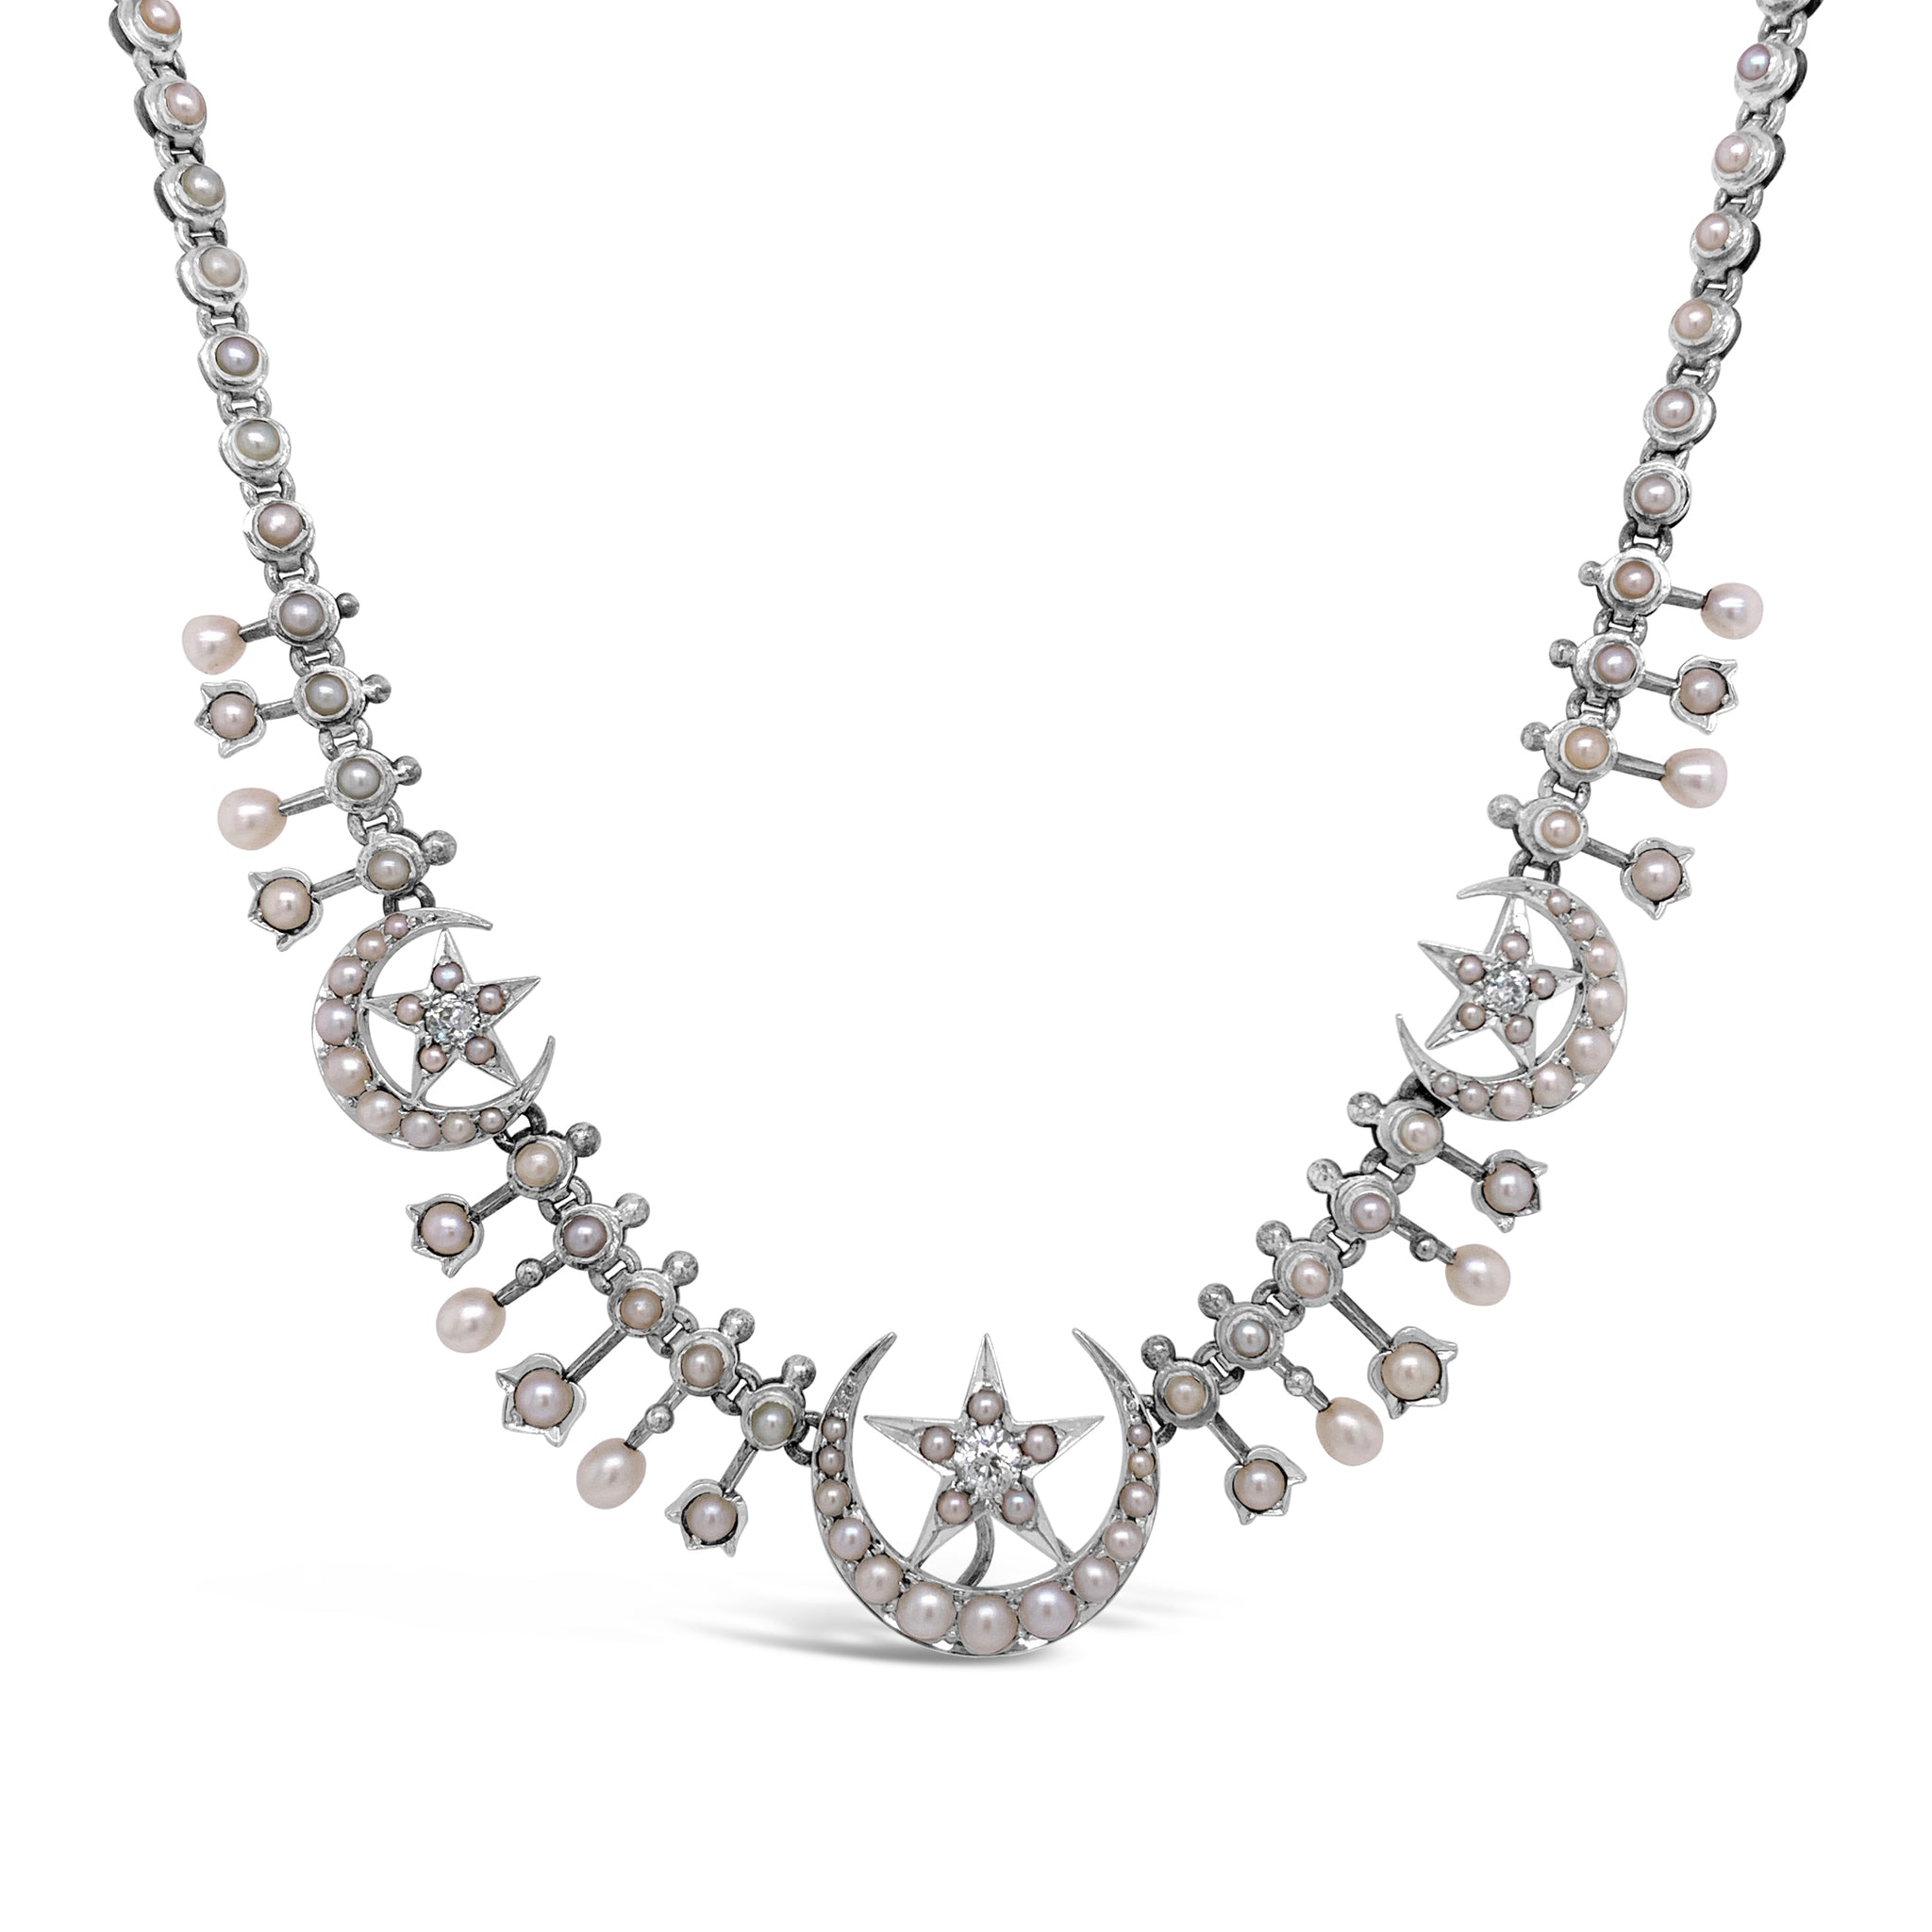 Antique Star-in-Crescent Necklace